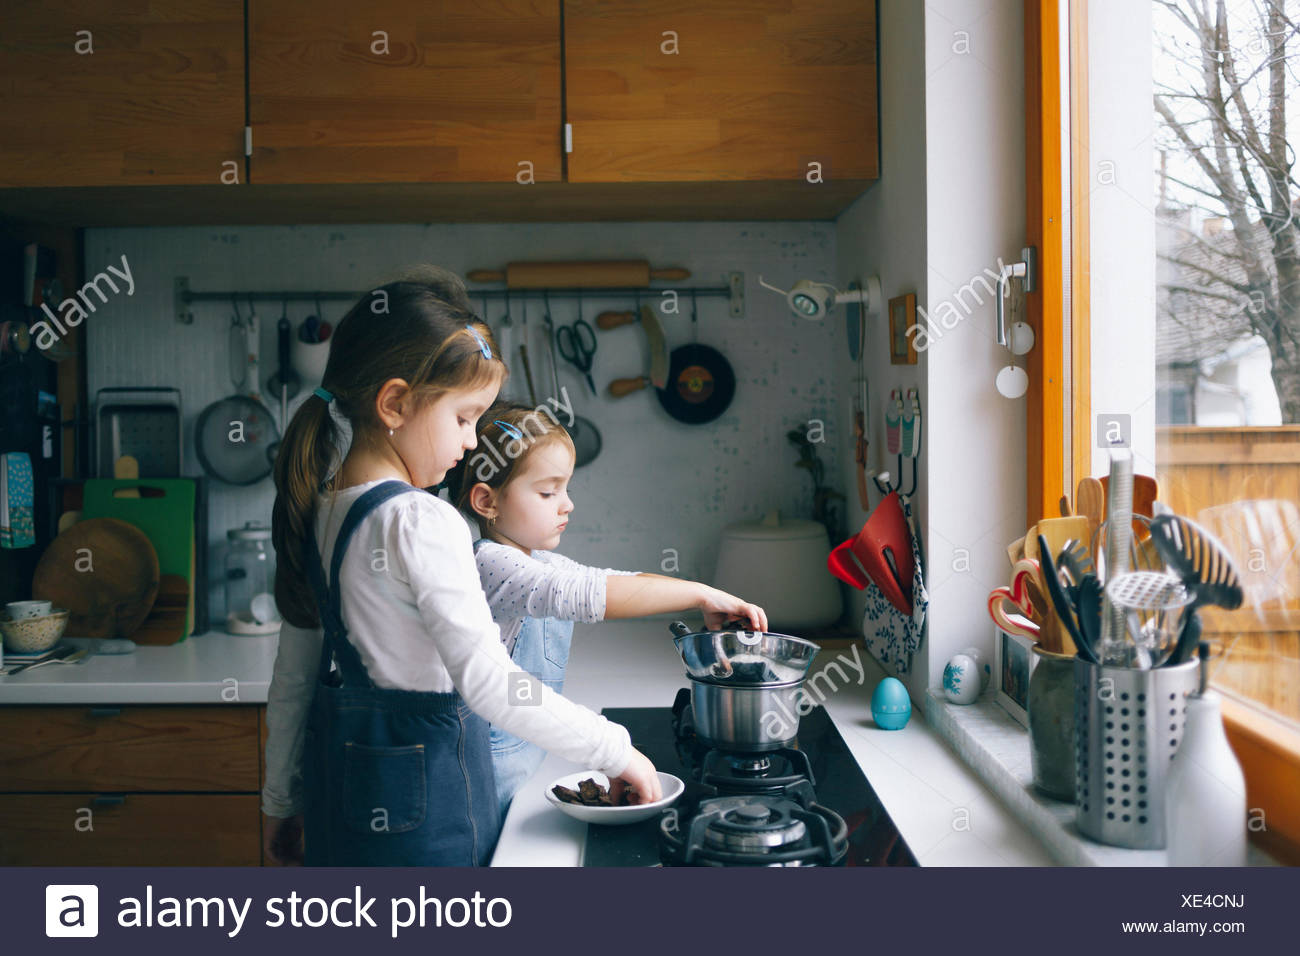 Girls melting chocolate in a kitchen - Stock Image